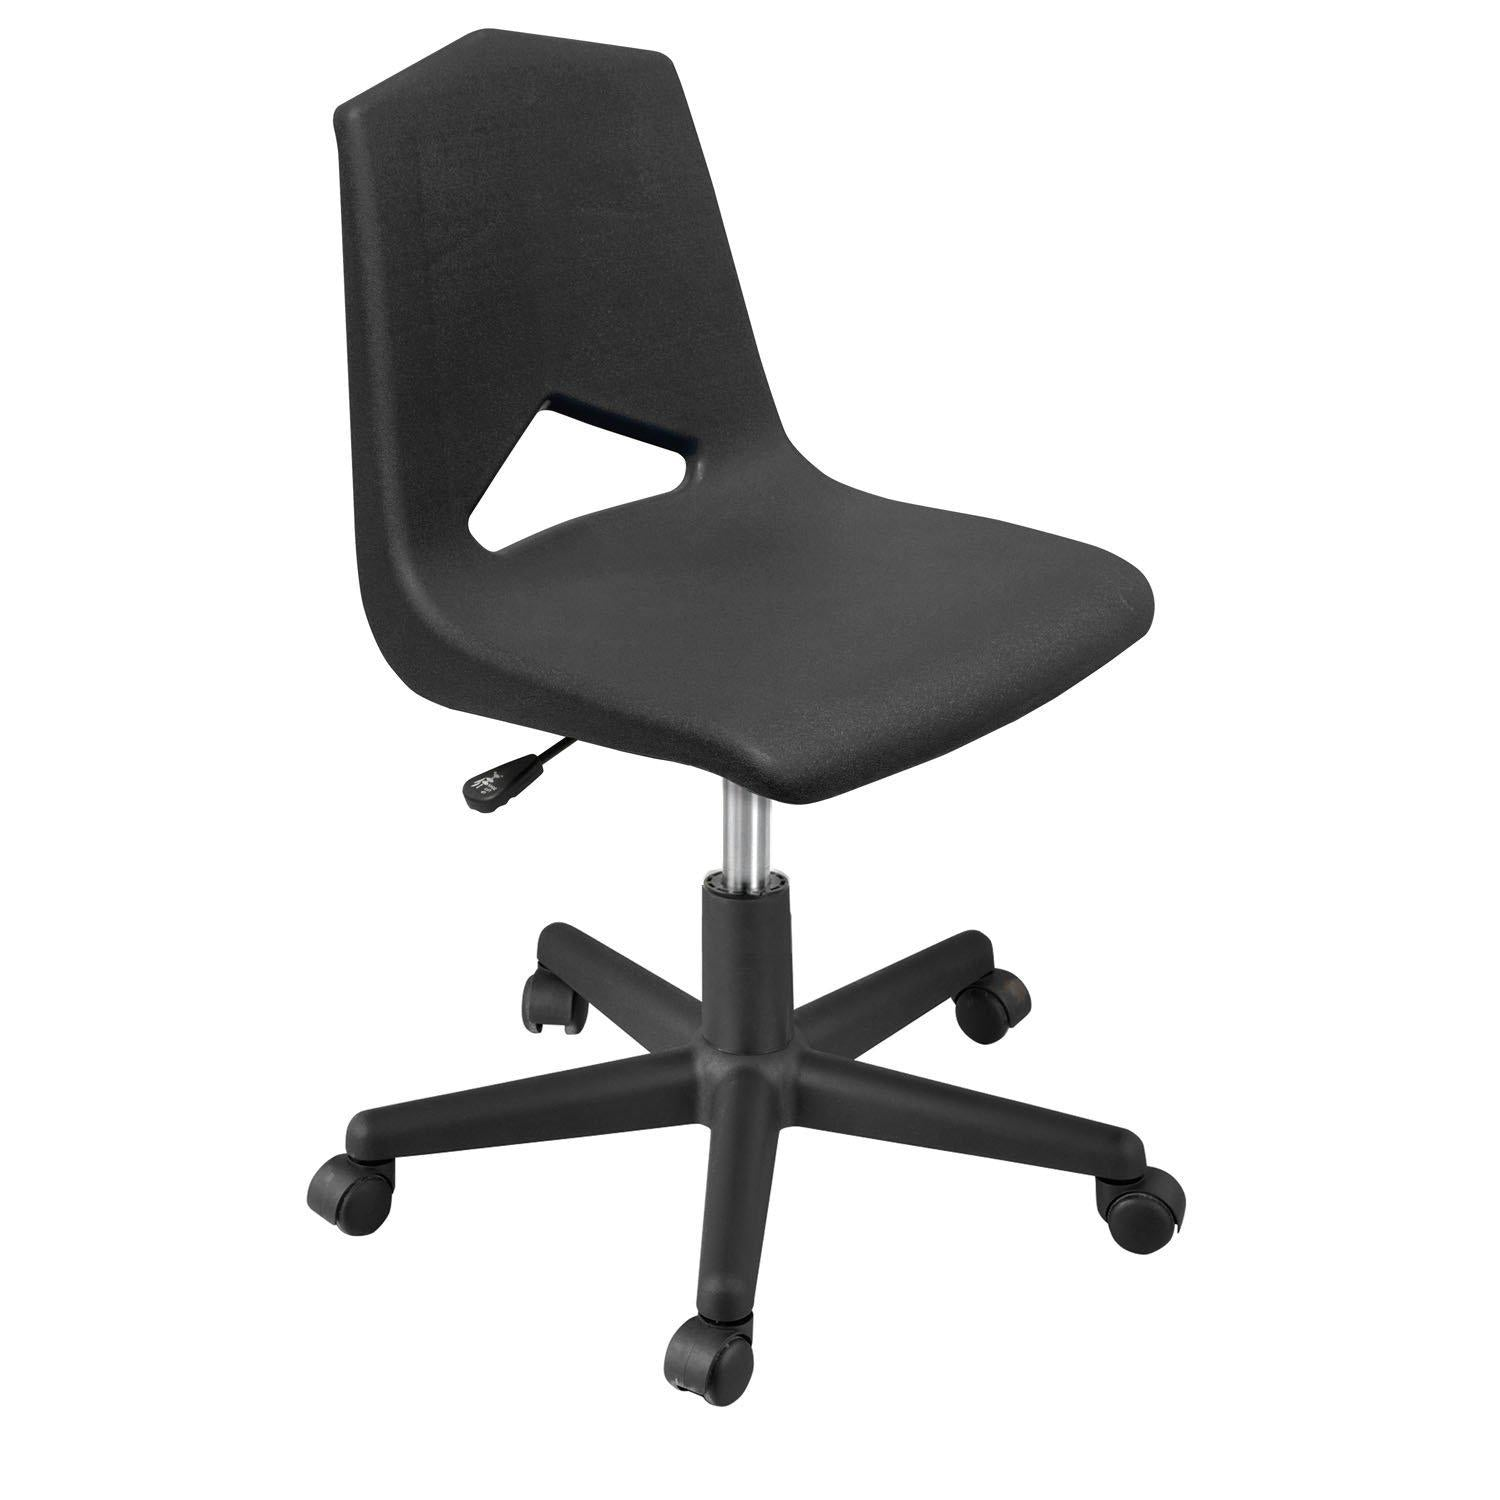 MG1100 Series Gas Lift Task Chair with 5-Star Base-Chairs-Black-